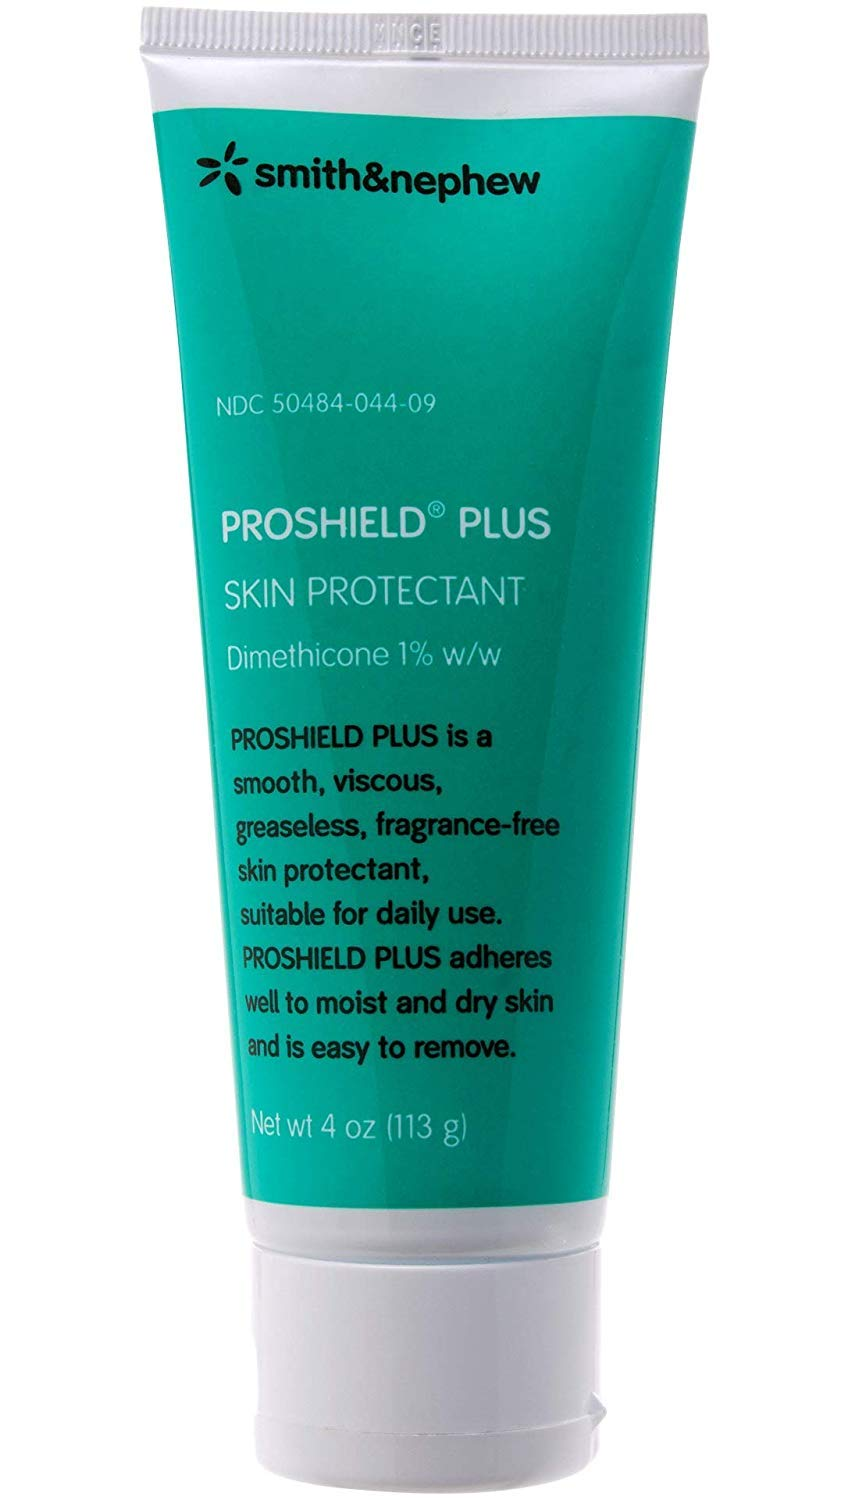 PROSHIELD PLUS SKIN PROTECTANT 4OZ